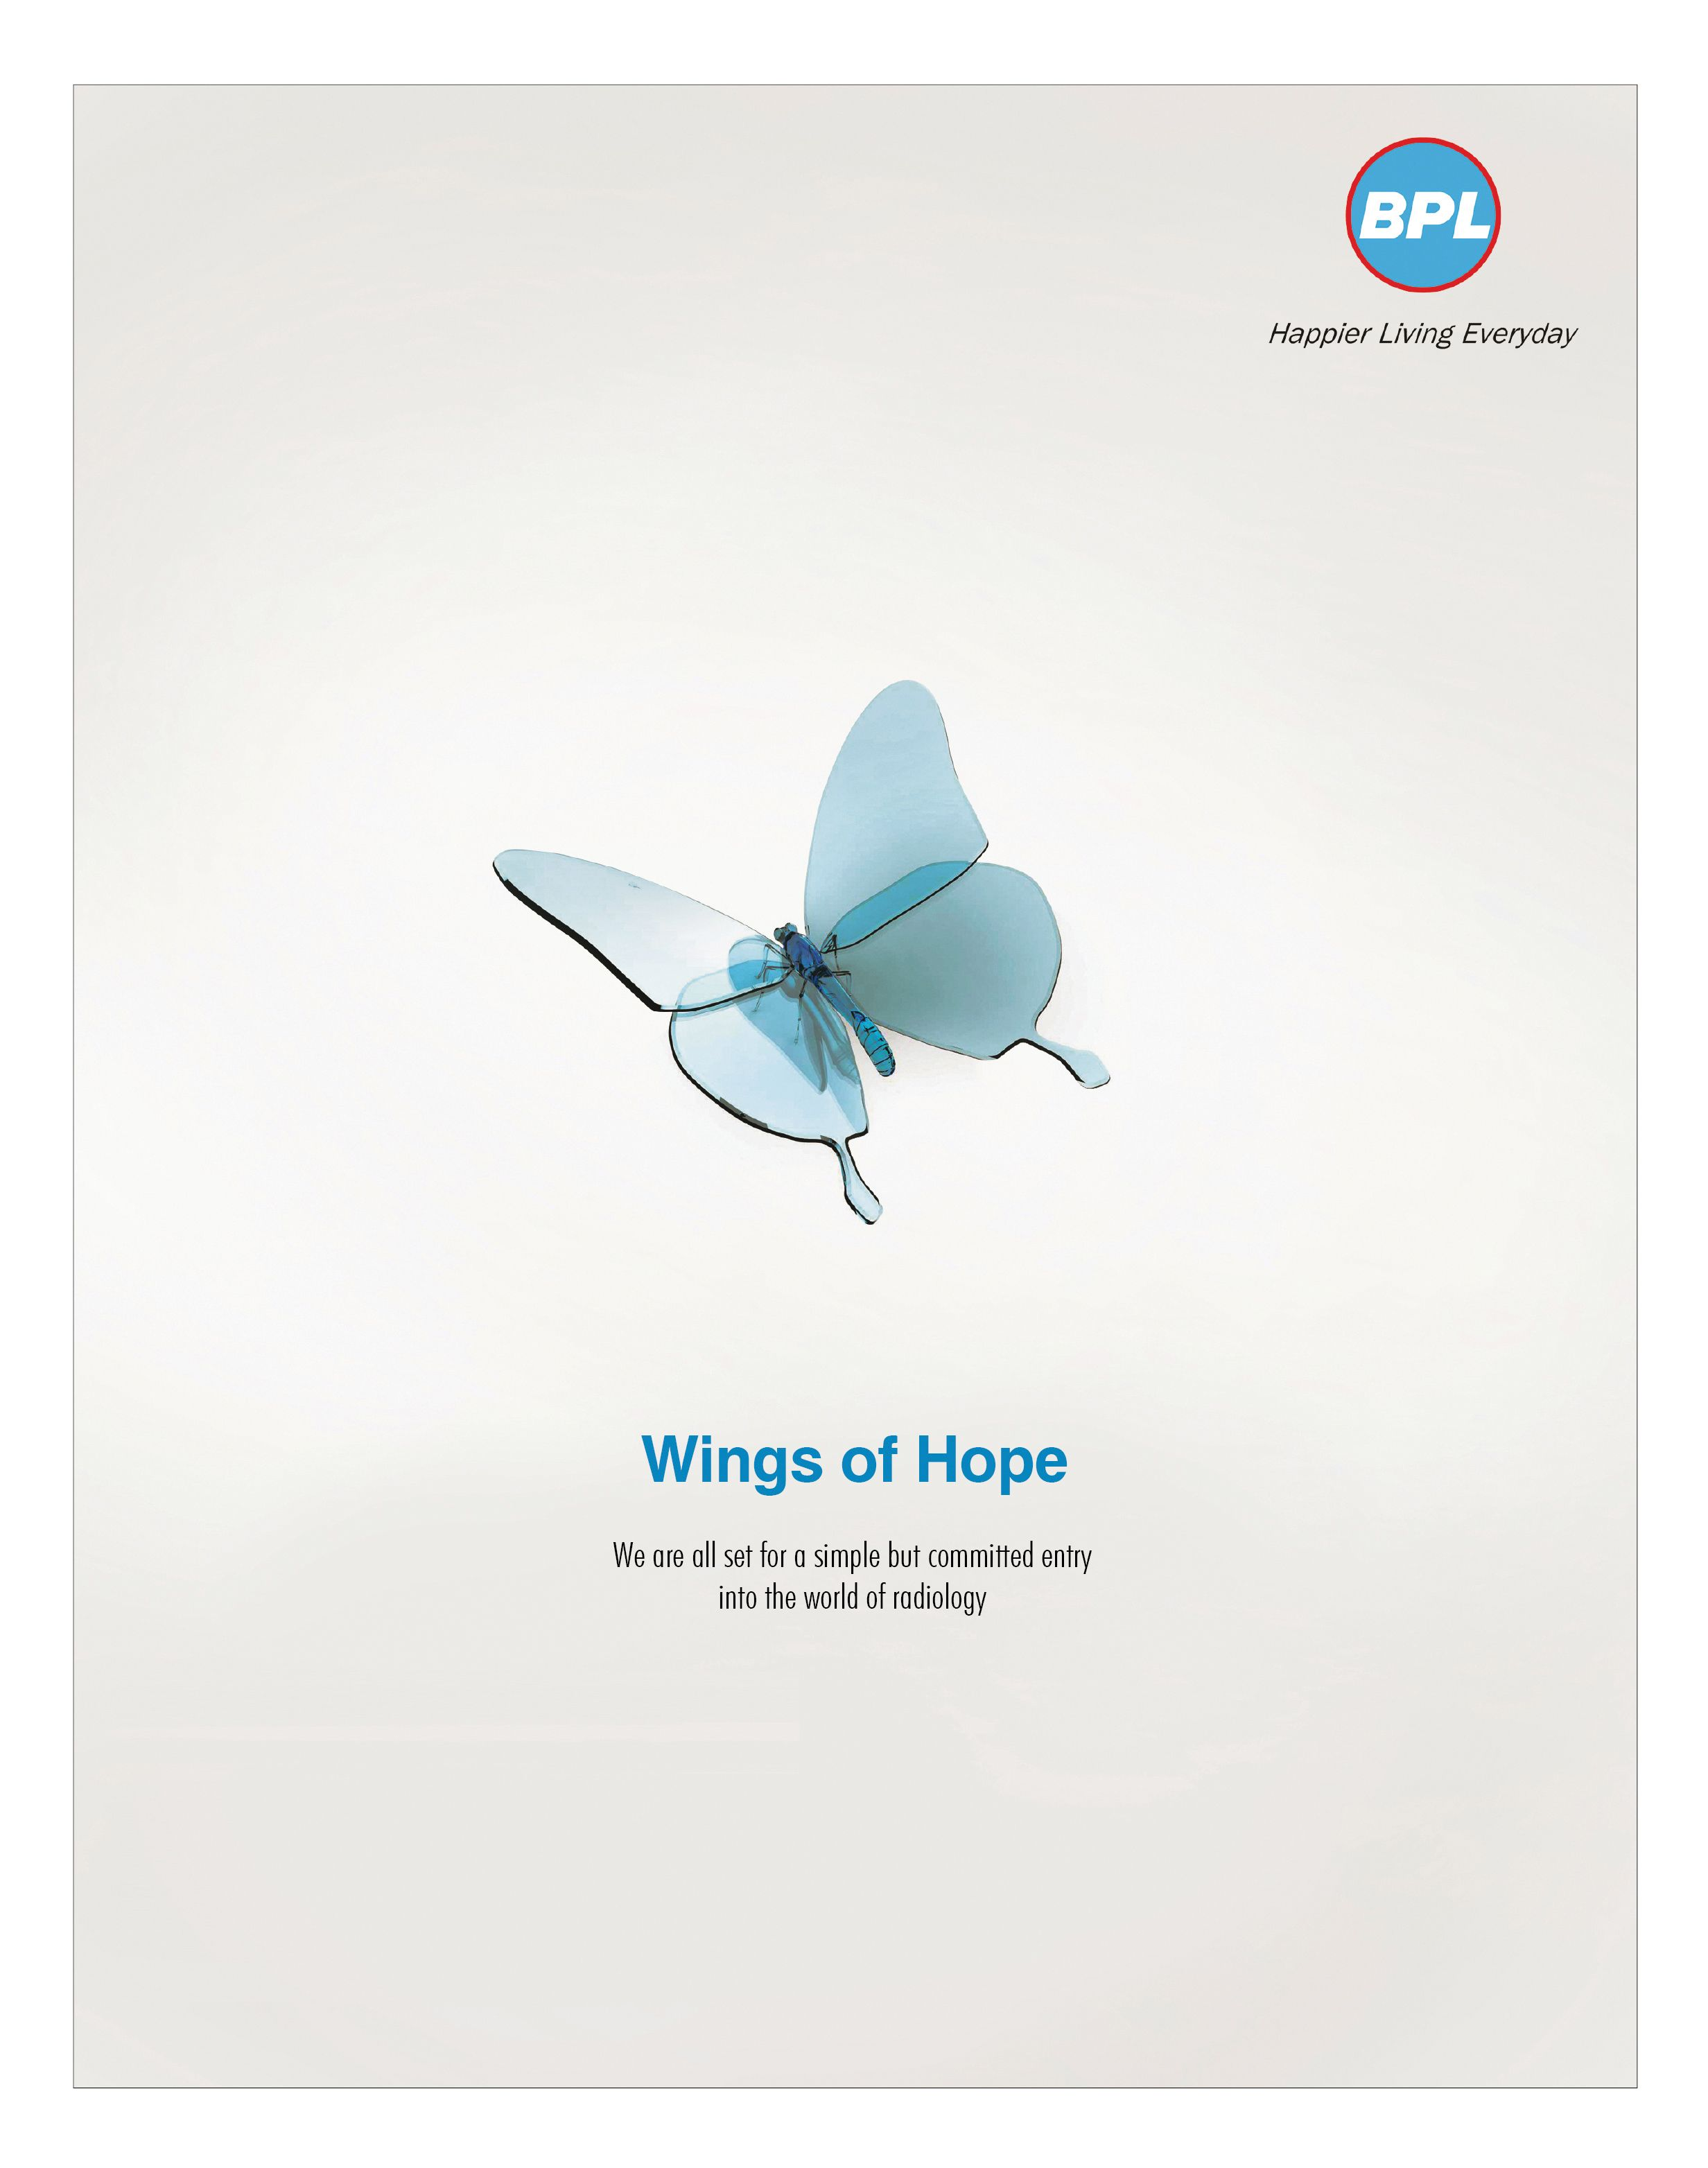 This was another teaser ad designed for BPL Medical